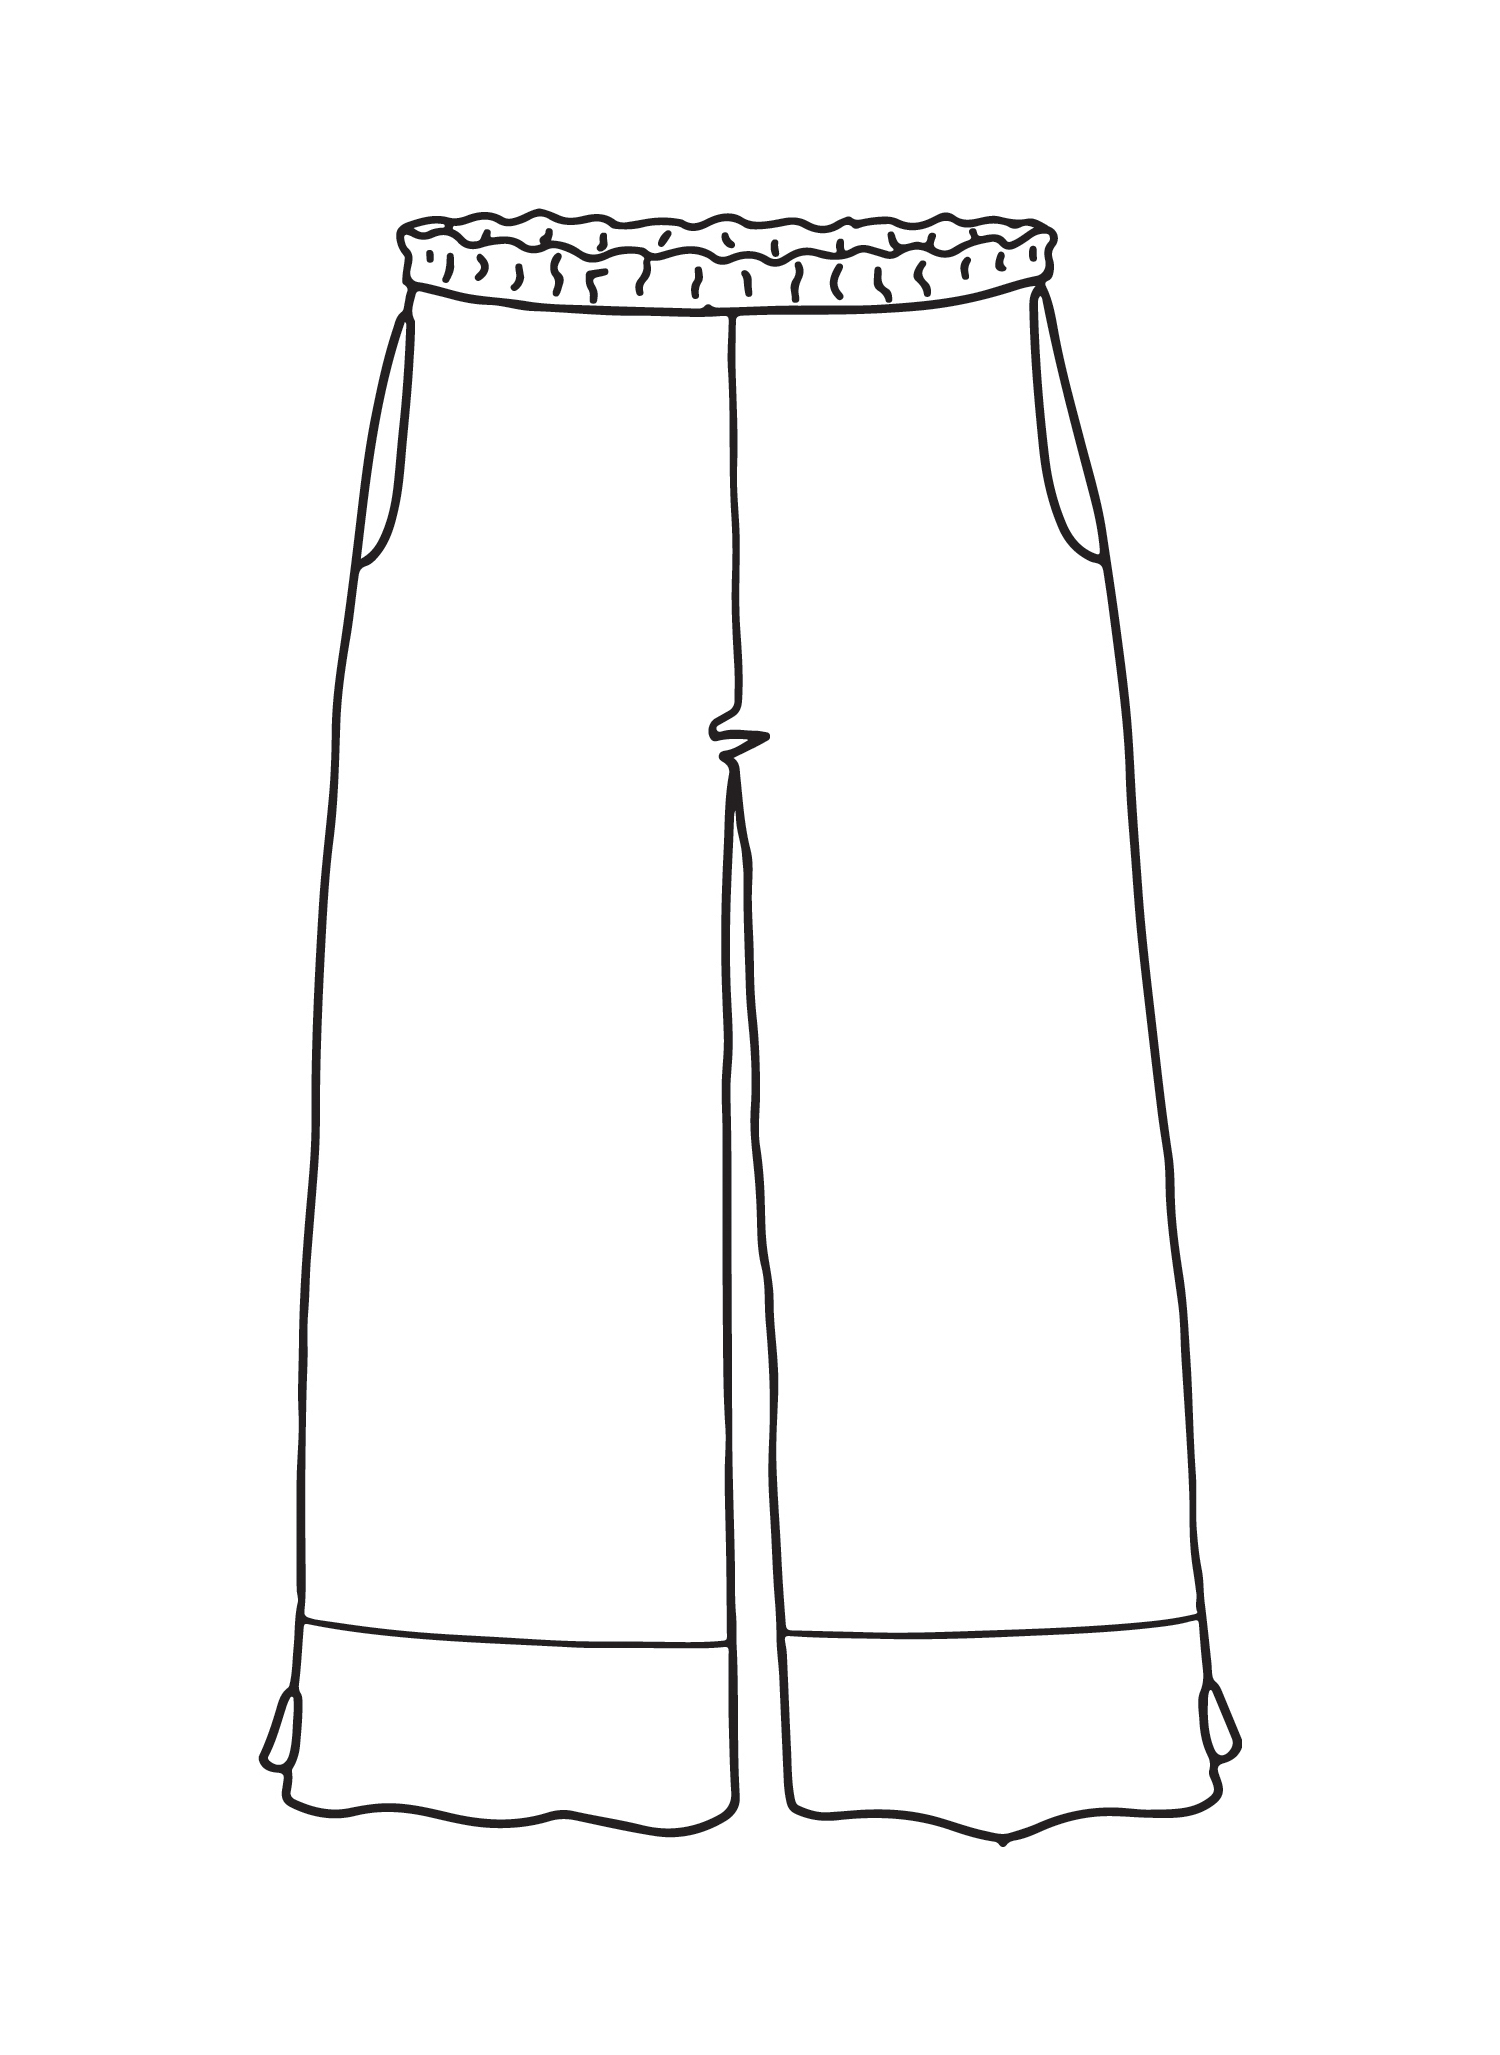 Bloom Pant sketch image